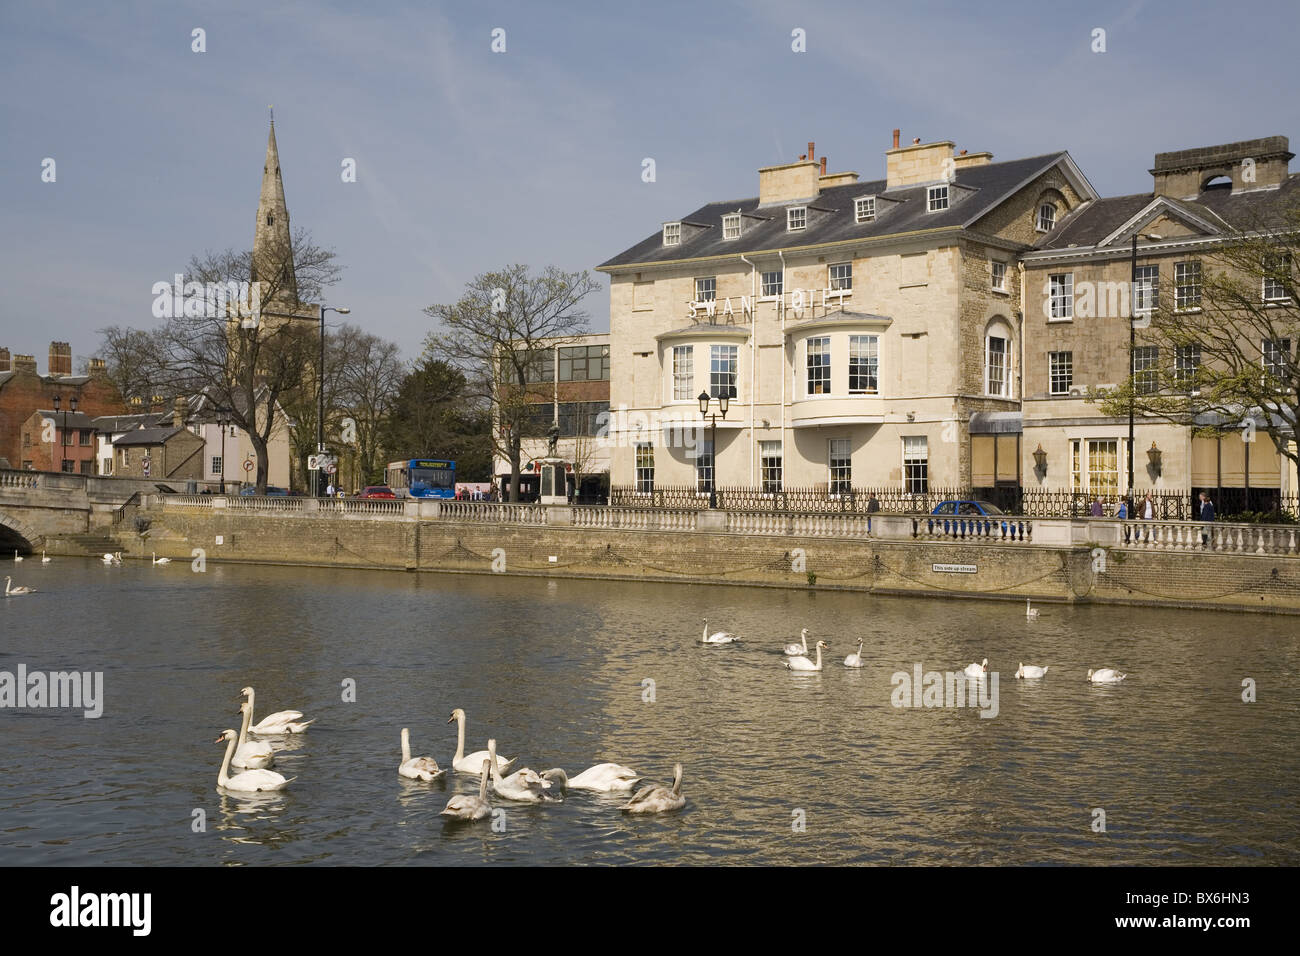 Swan Hotel and Great Ouse River, Bedford, Bedfordshire, England, United Kingdom, Europe - Stock Image